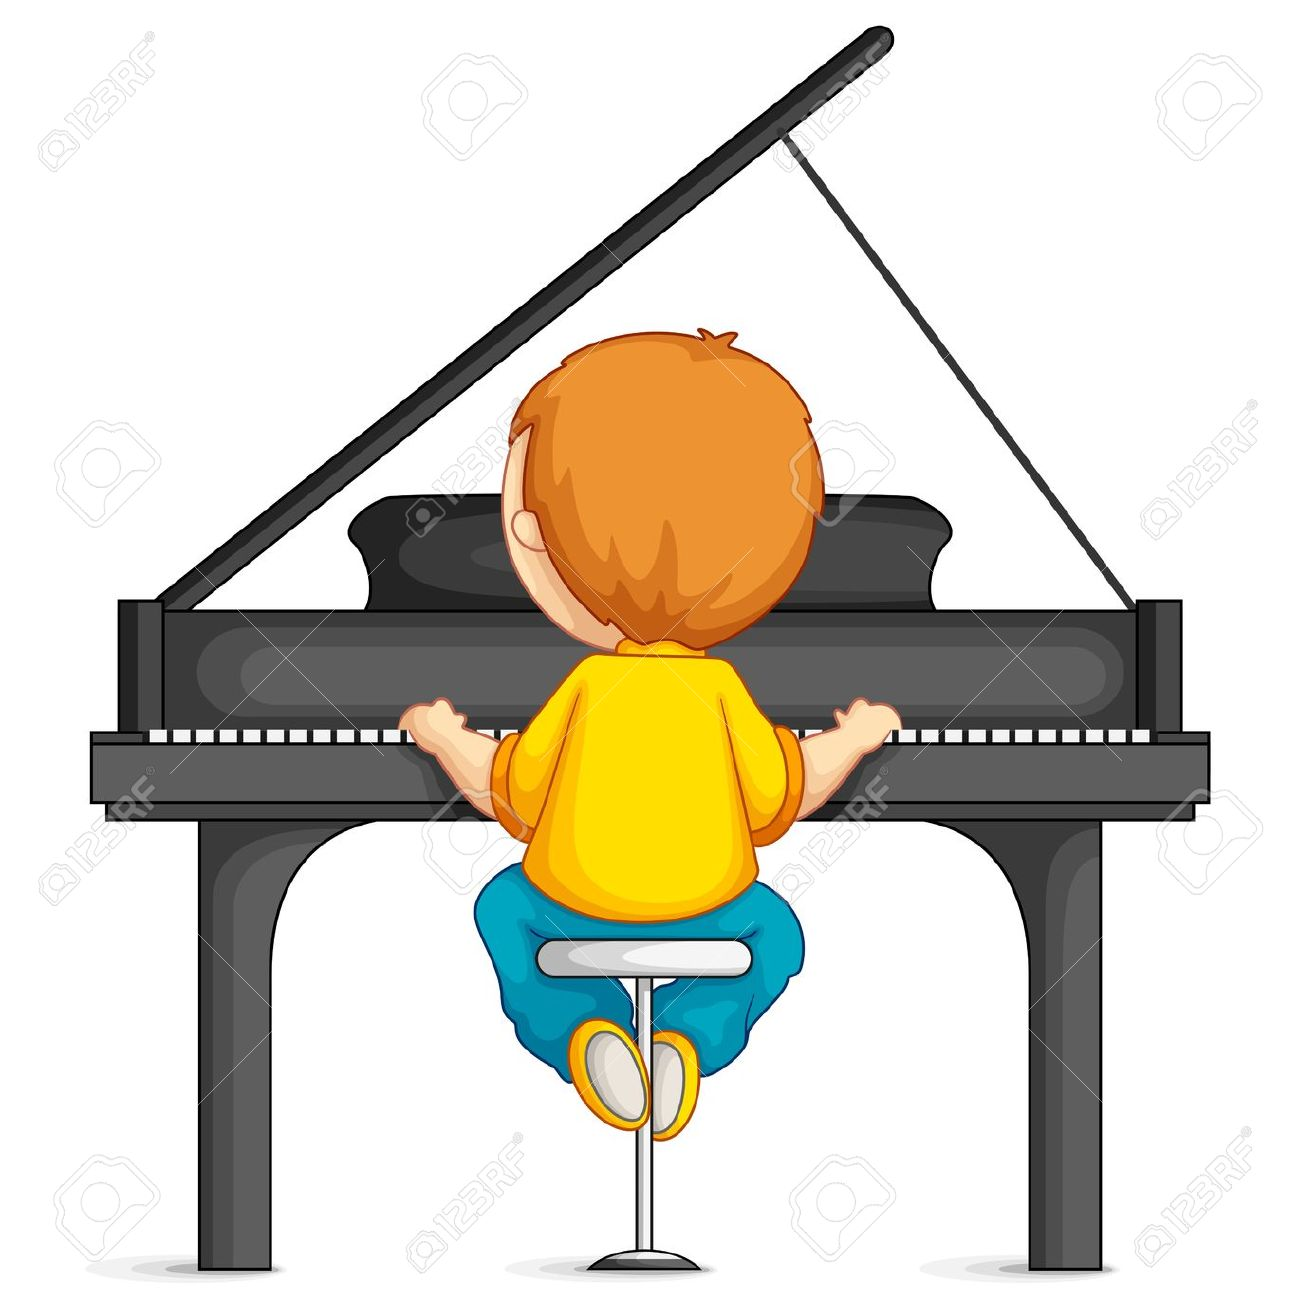 Piano clipart pianist. Free download best on